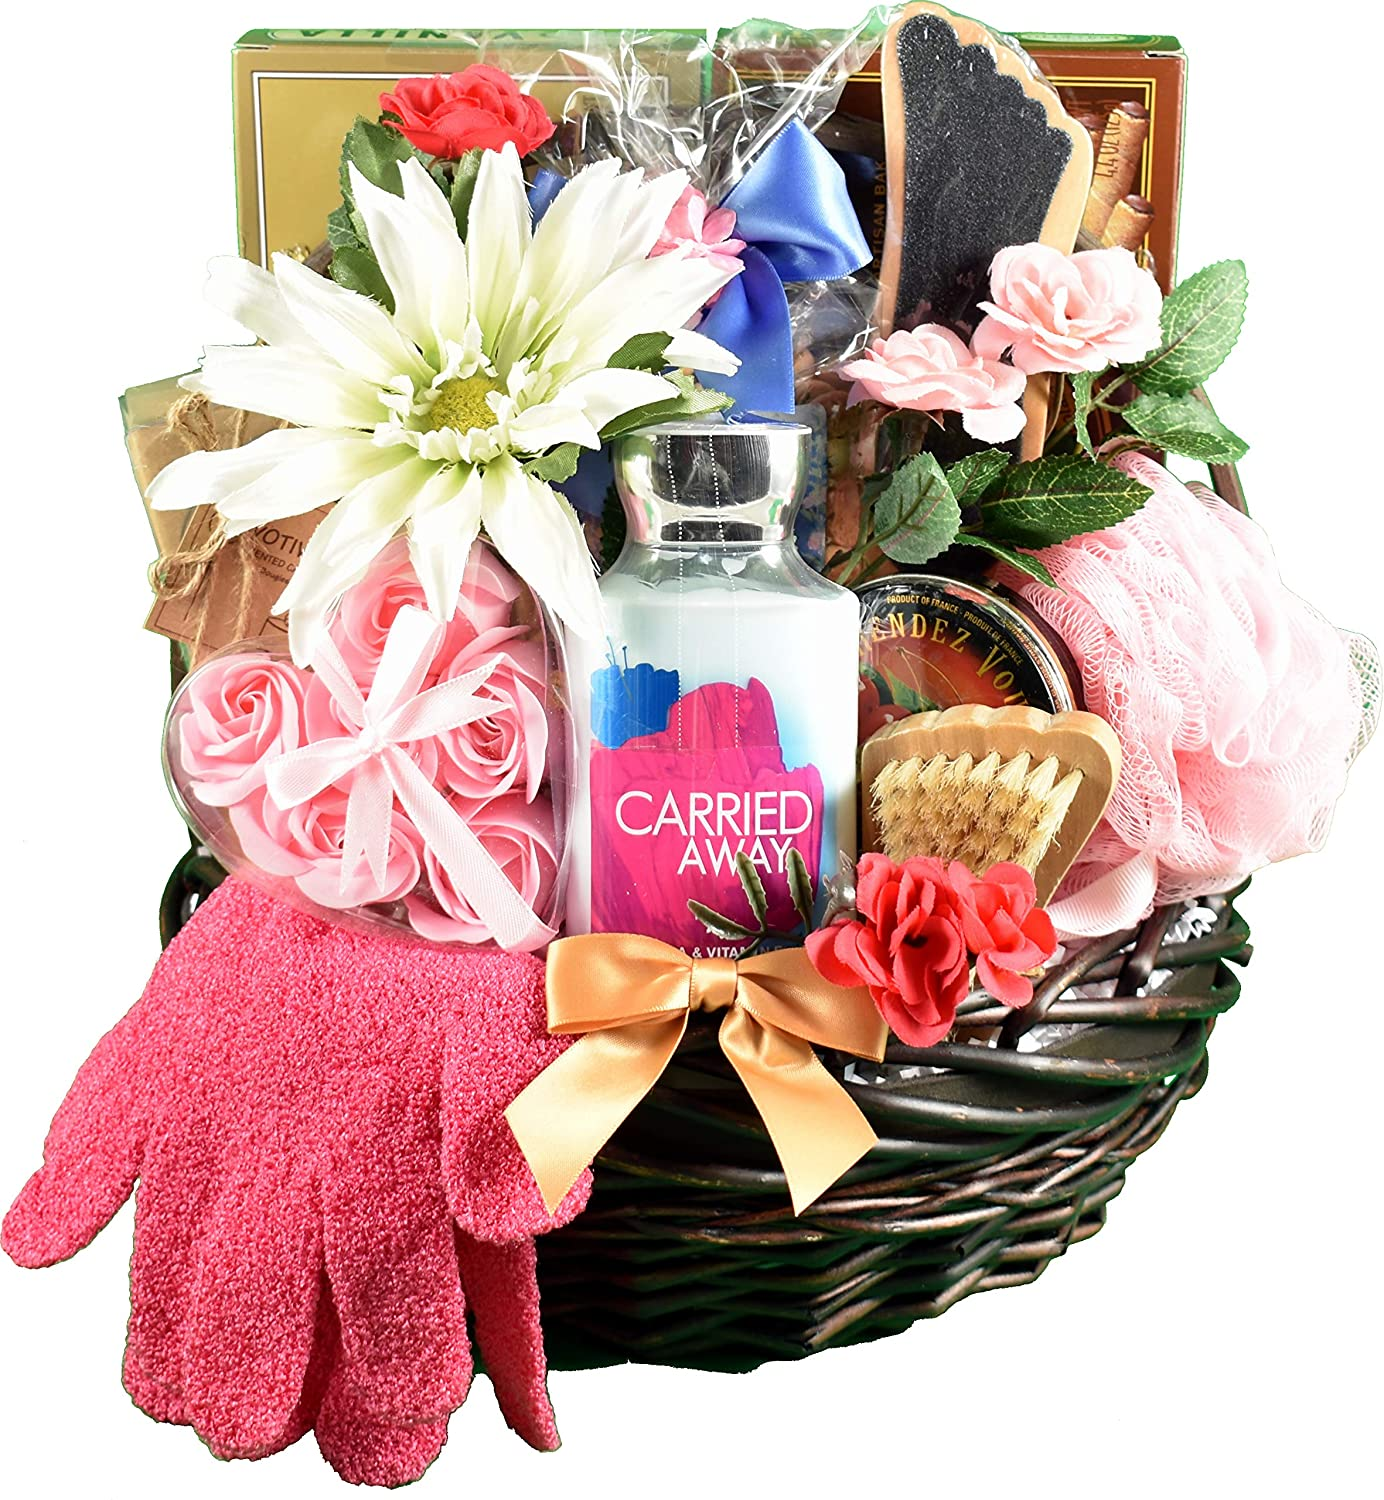 A Sweet Escape, Spa & Chocolates Gift Basket For Her - Spoil Her In Luxury With Decadent Chocolates & Personal Care Items & Lotions 91mpZEuaehL._SL1500_